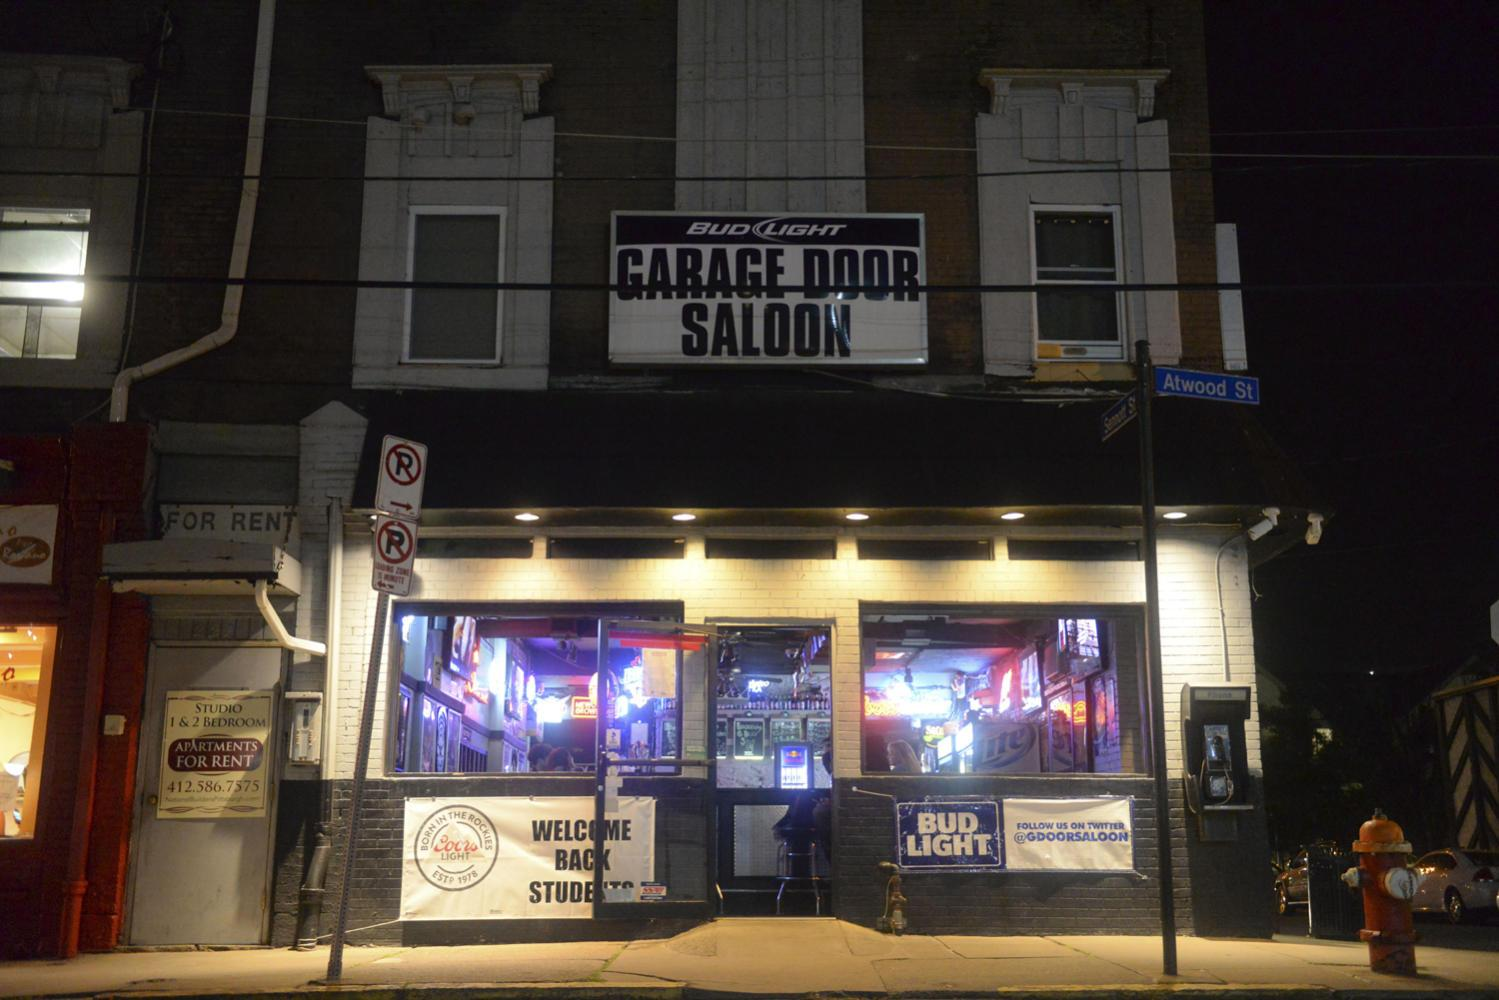 Two men are suing Pitt, Michael Rosfeld and Garage Door Saloon over an alleged incident of excessive force in December. (Photo by Anna Bongardino | Visual Editor)